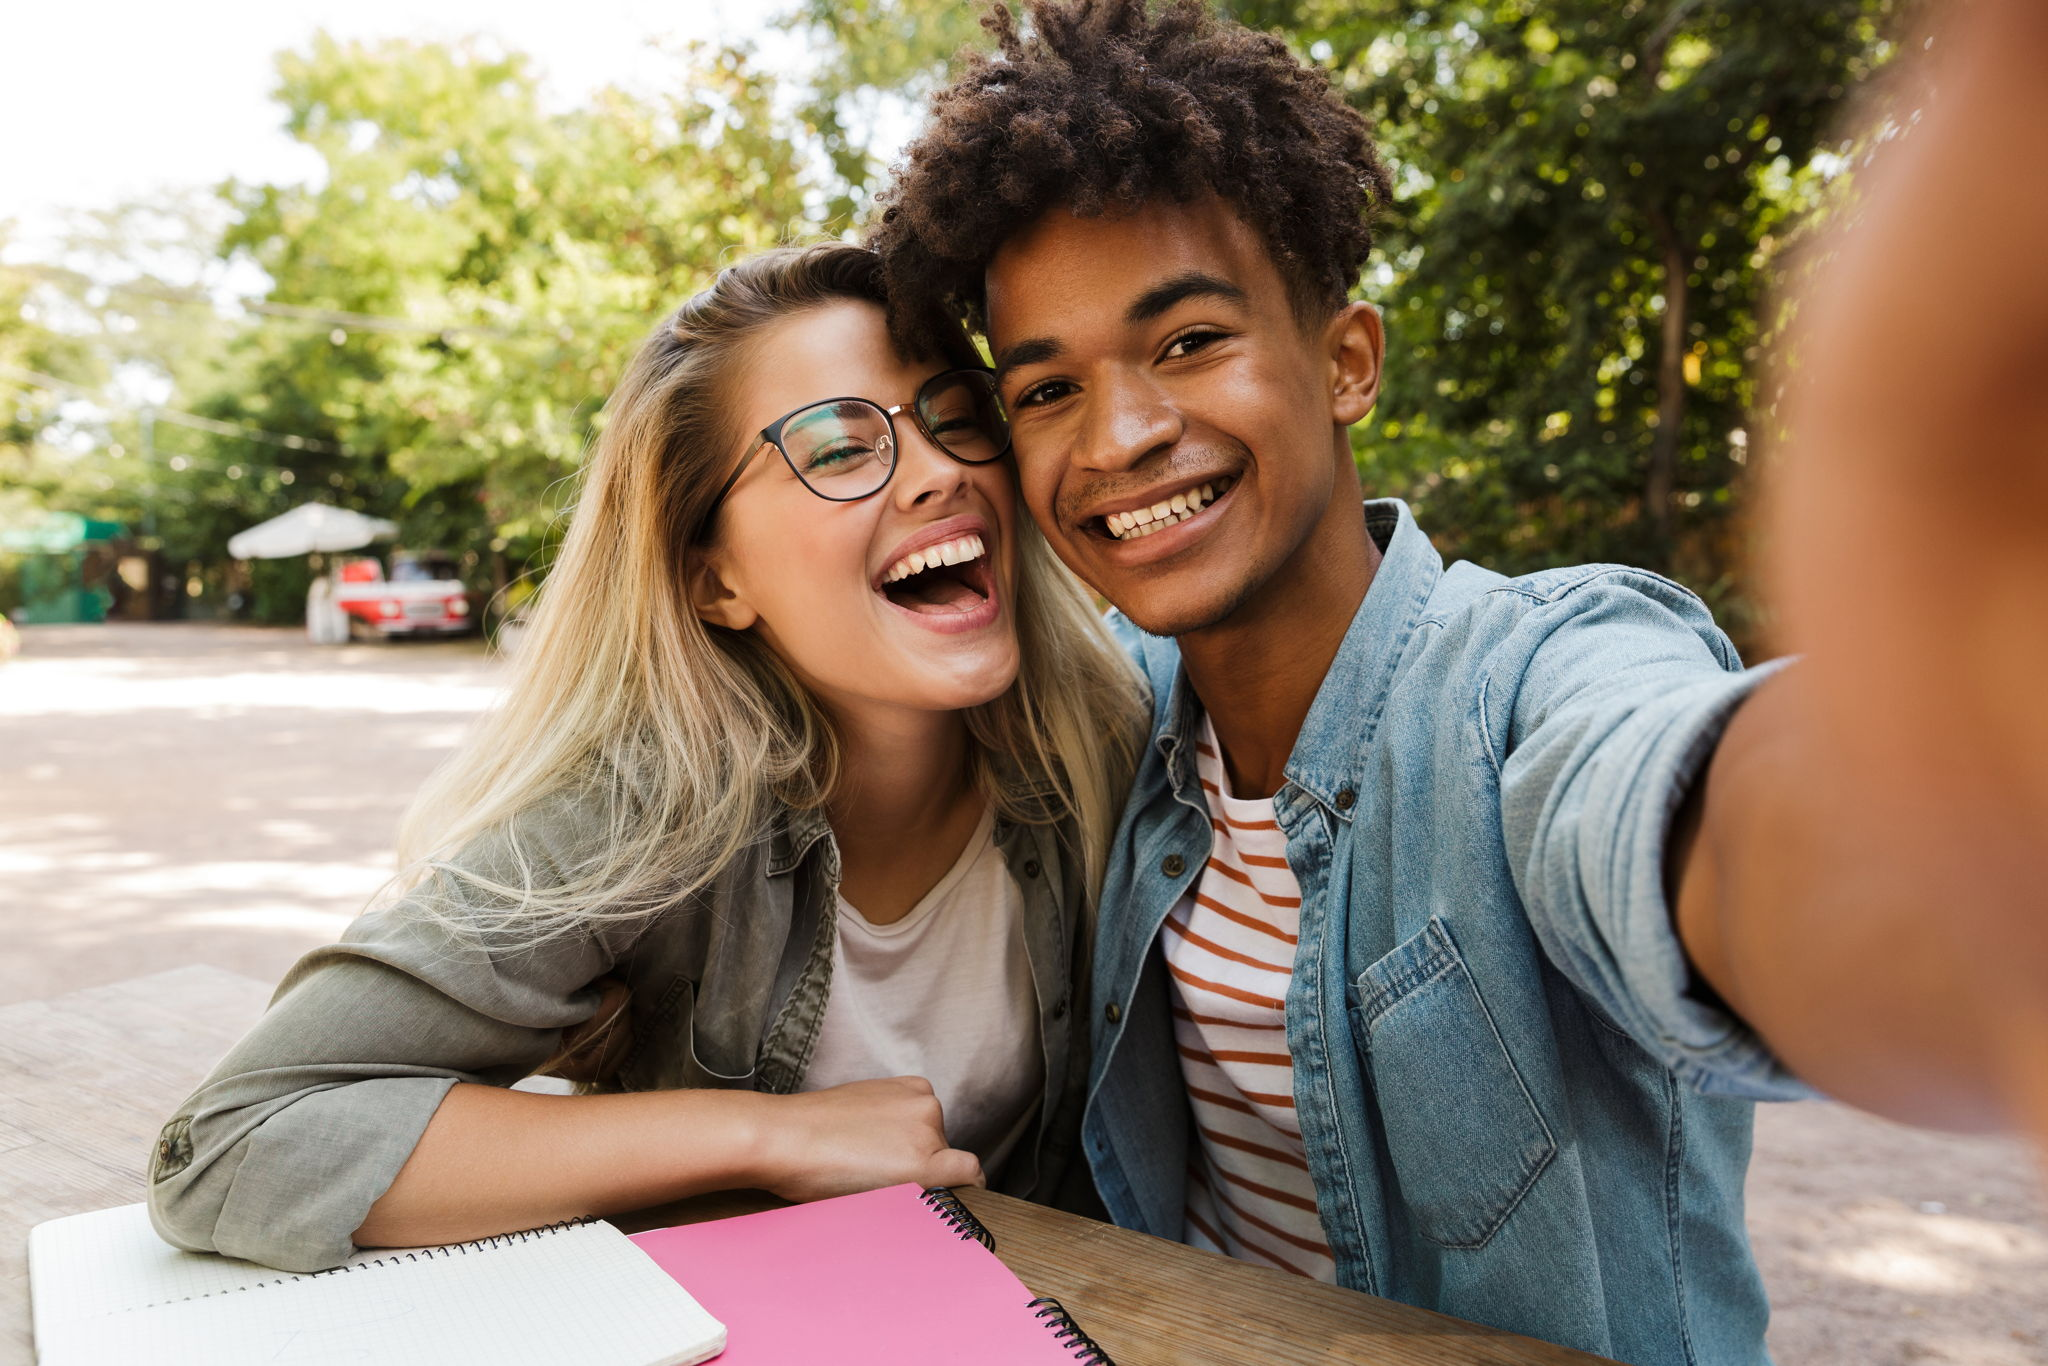 Image of a young attractive multi ethnic couple smiling and taking a selfie together. They are sitting on a bench in a park working on a project together.